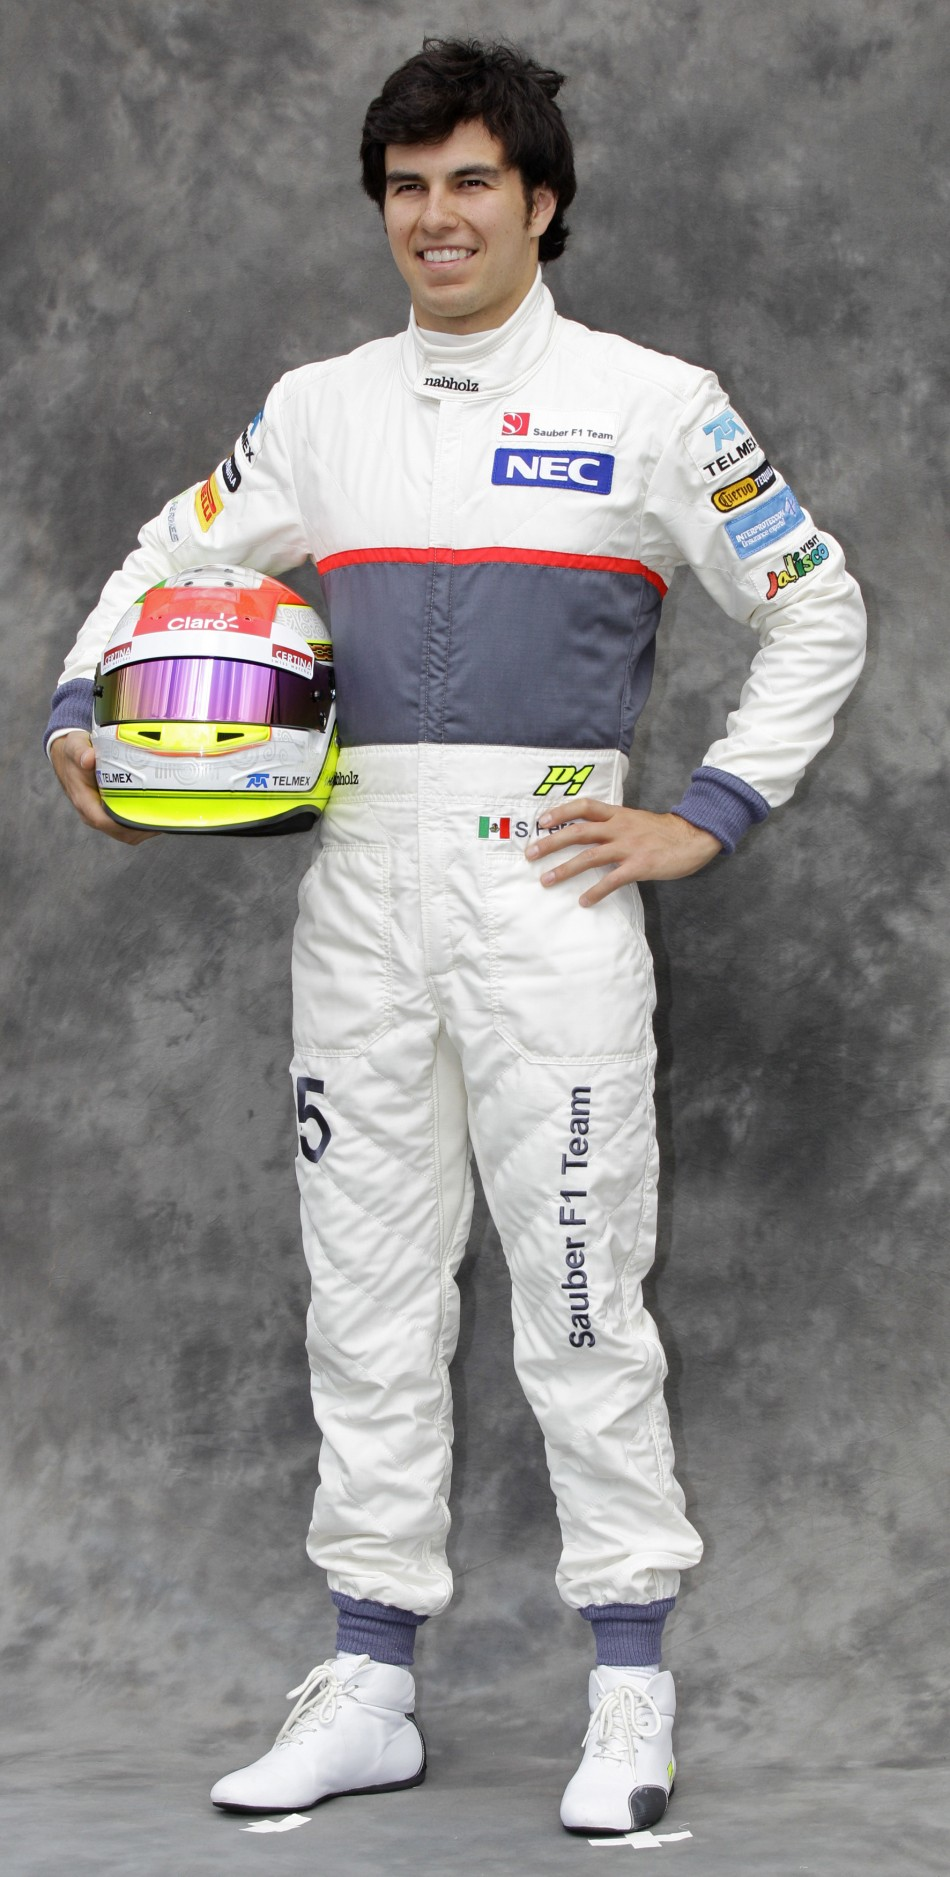 Sauber Formula One driver Perez poses prior to the Australian F1 Grand Prix at the Albert Park circuit in Melbourne